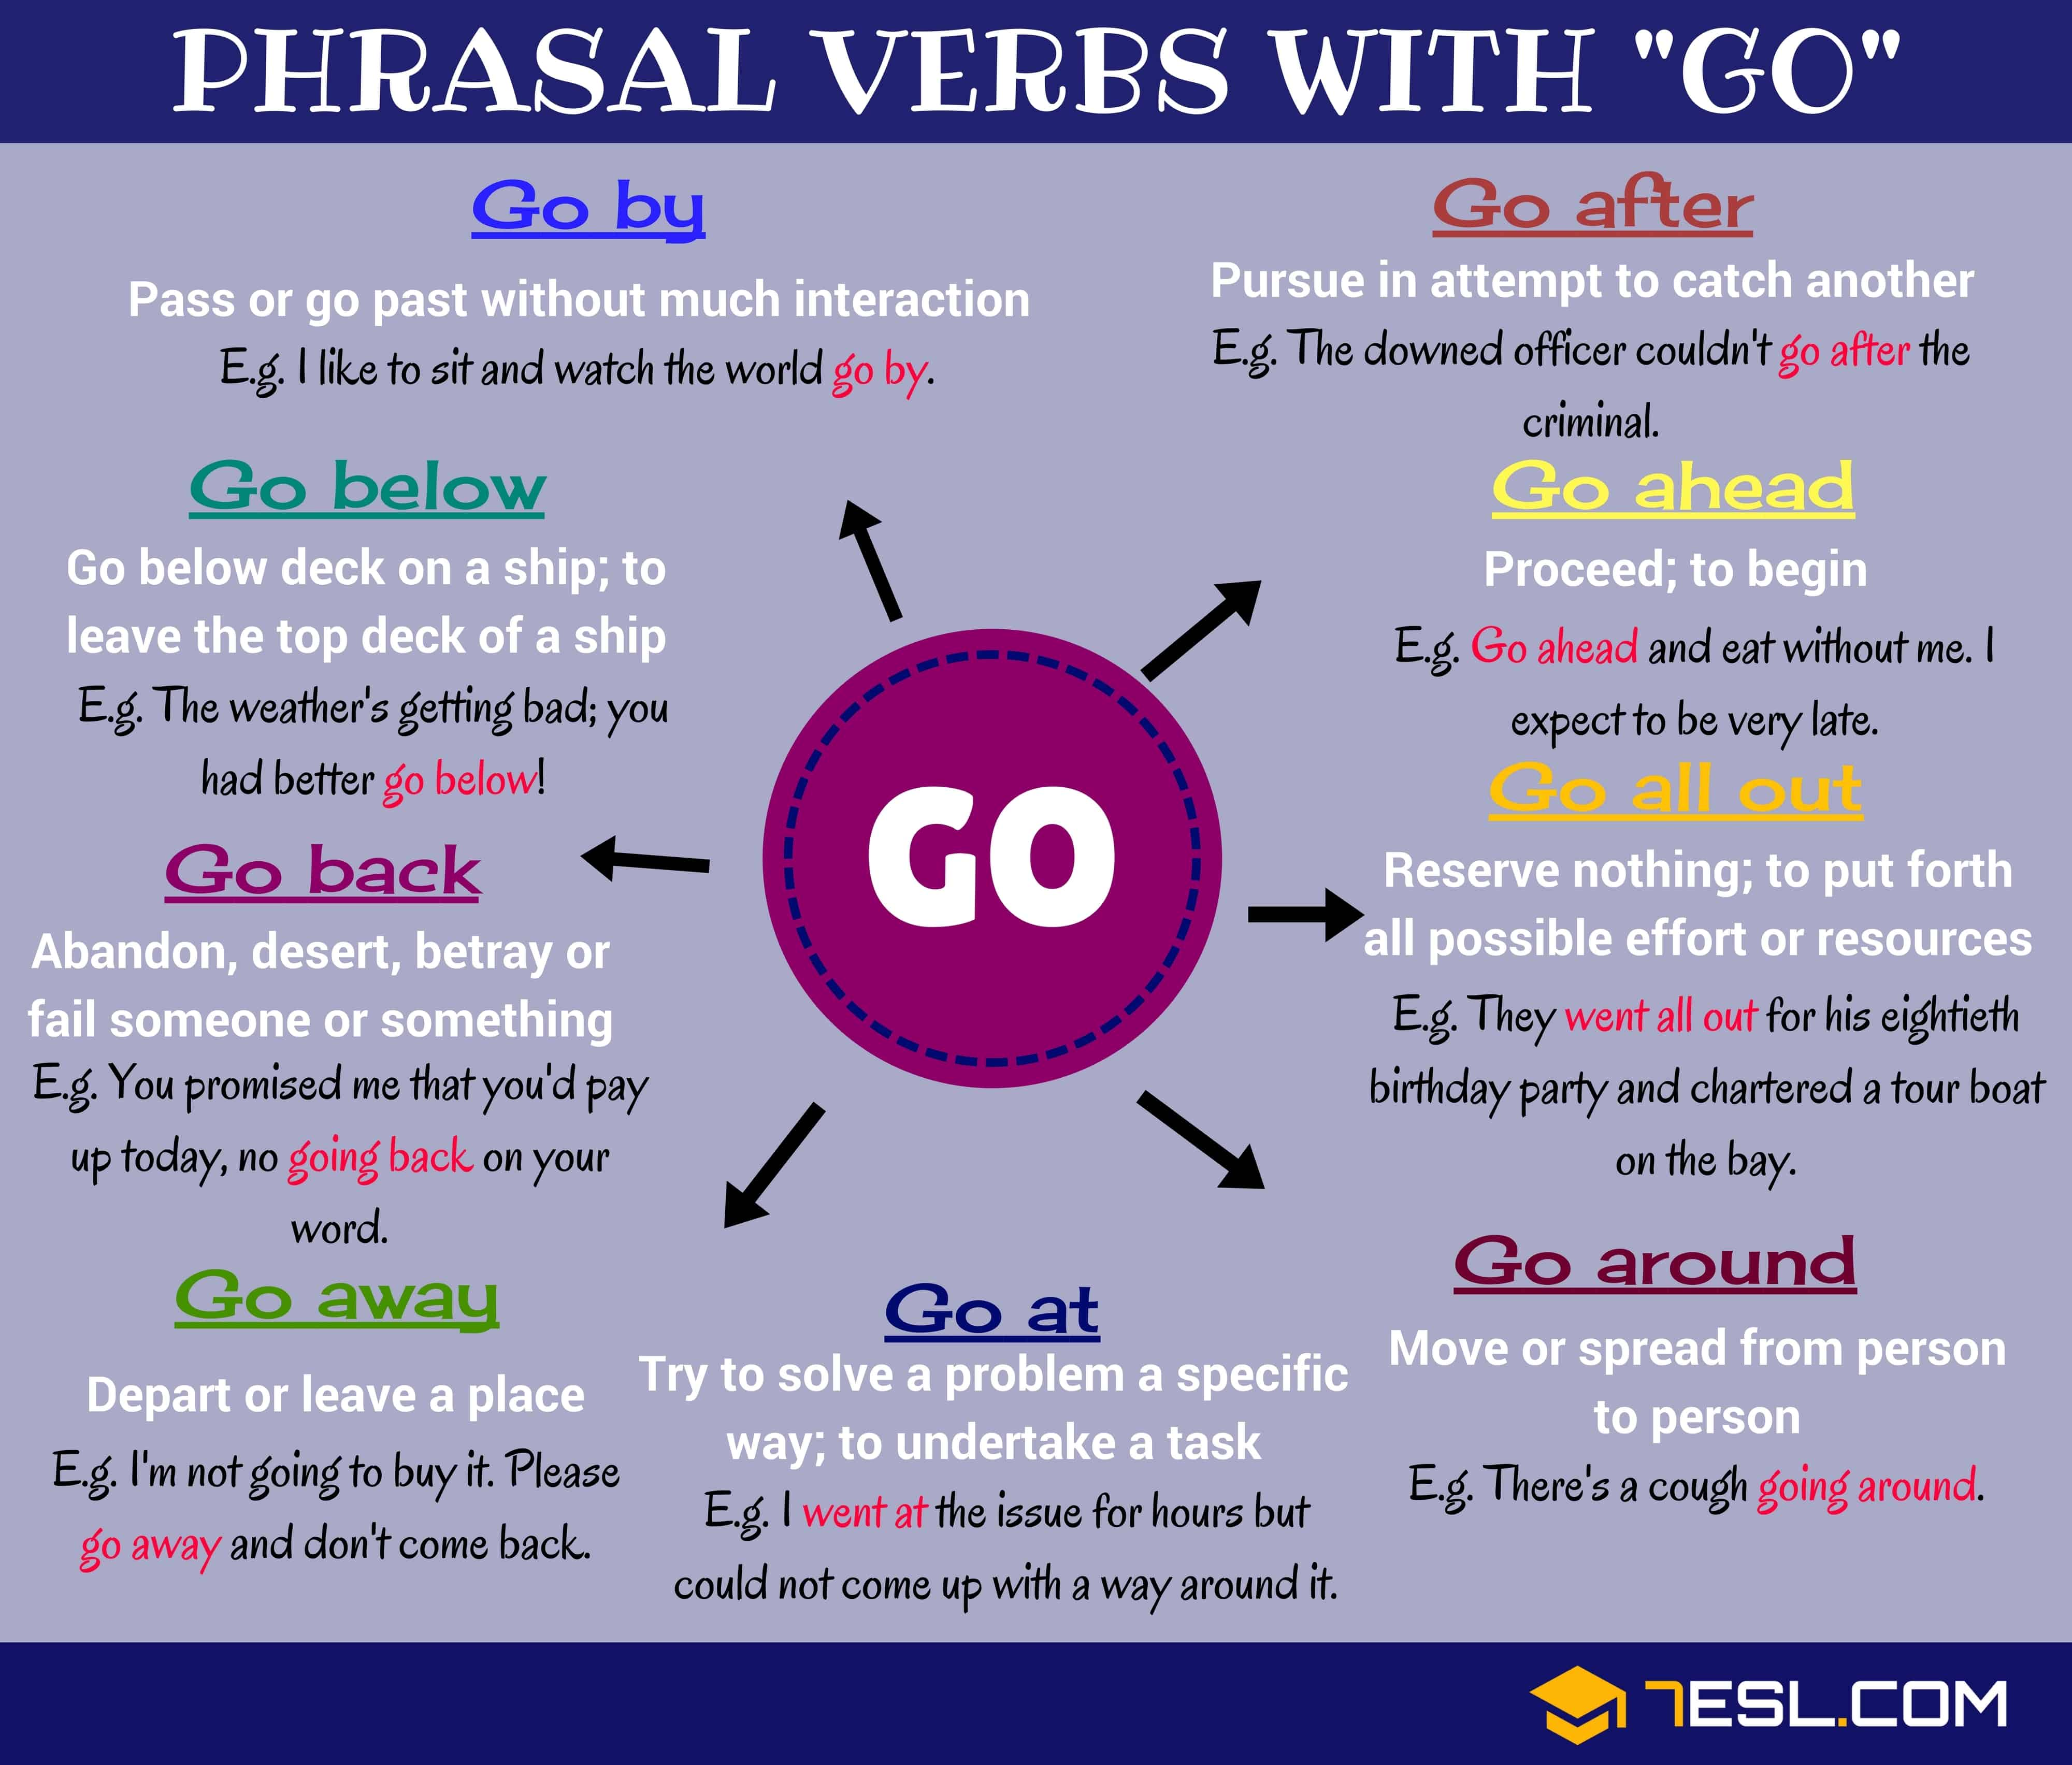 86 Useful Phrasal Verbs With Go With Meaning And Examples